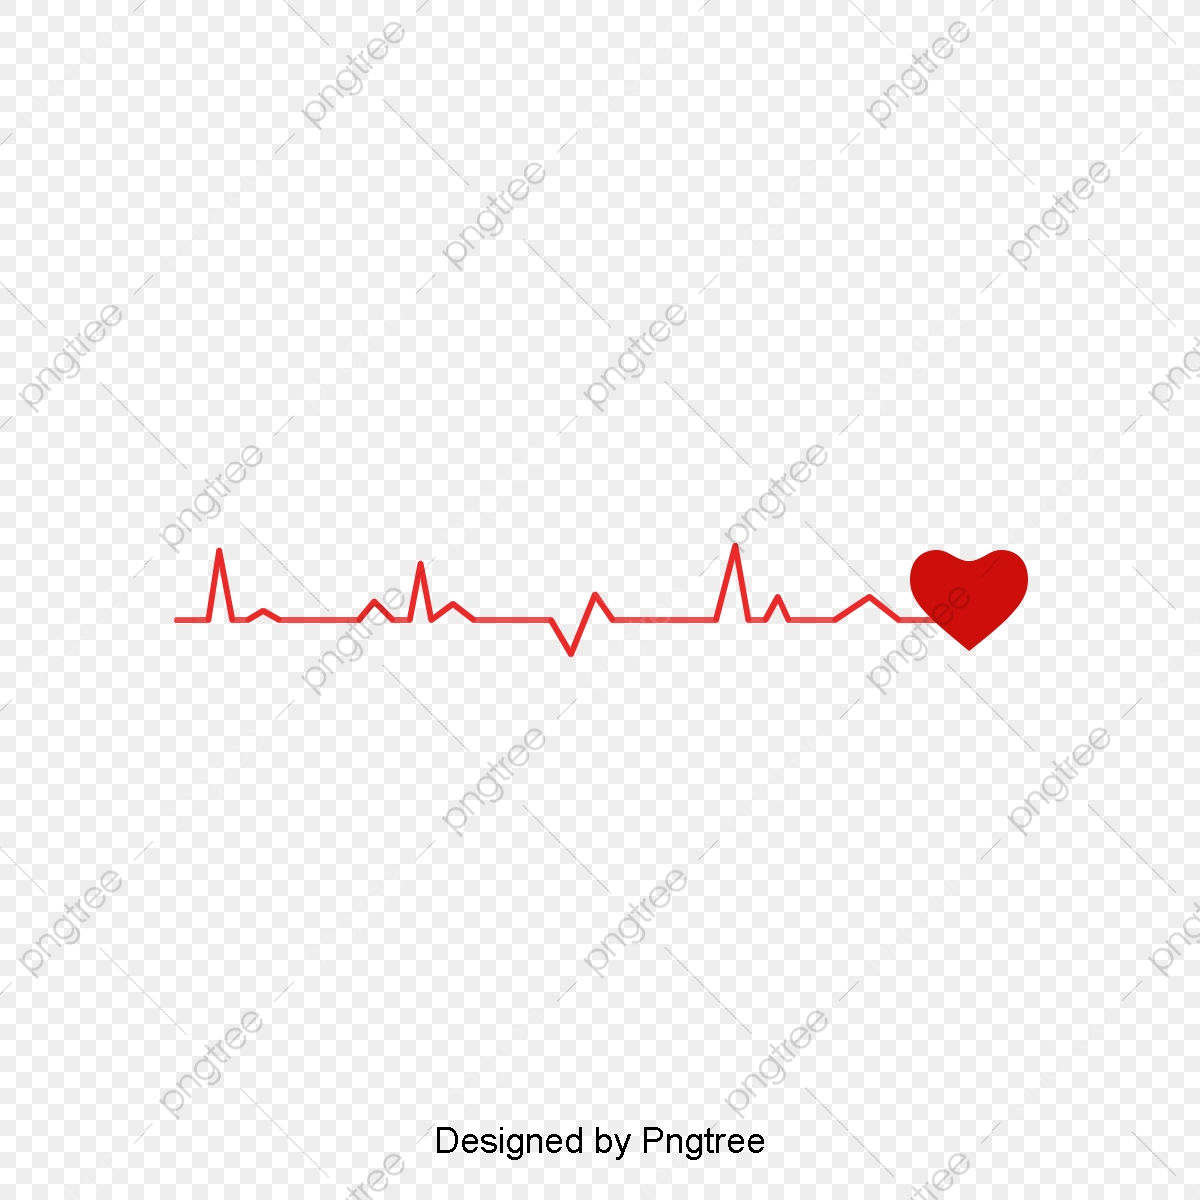 Red Heart Line Chart, Red Lines, Public Welfare, Red Love